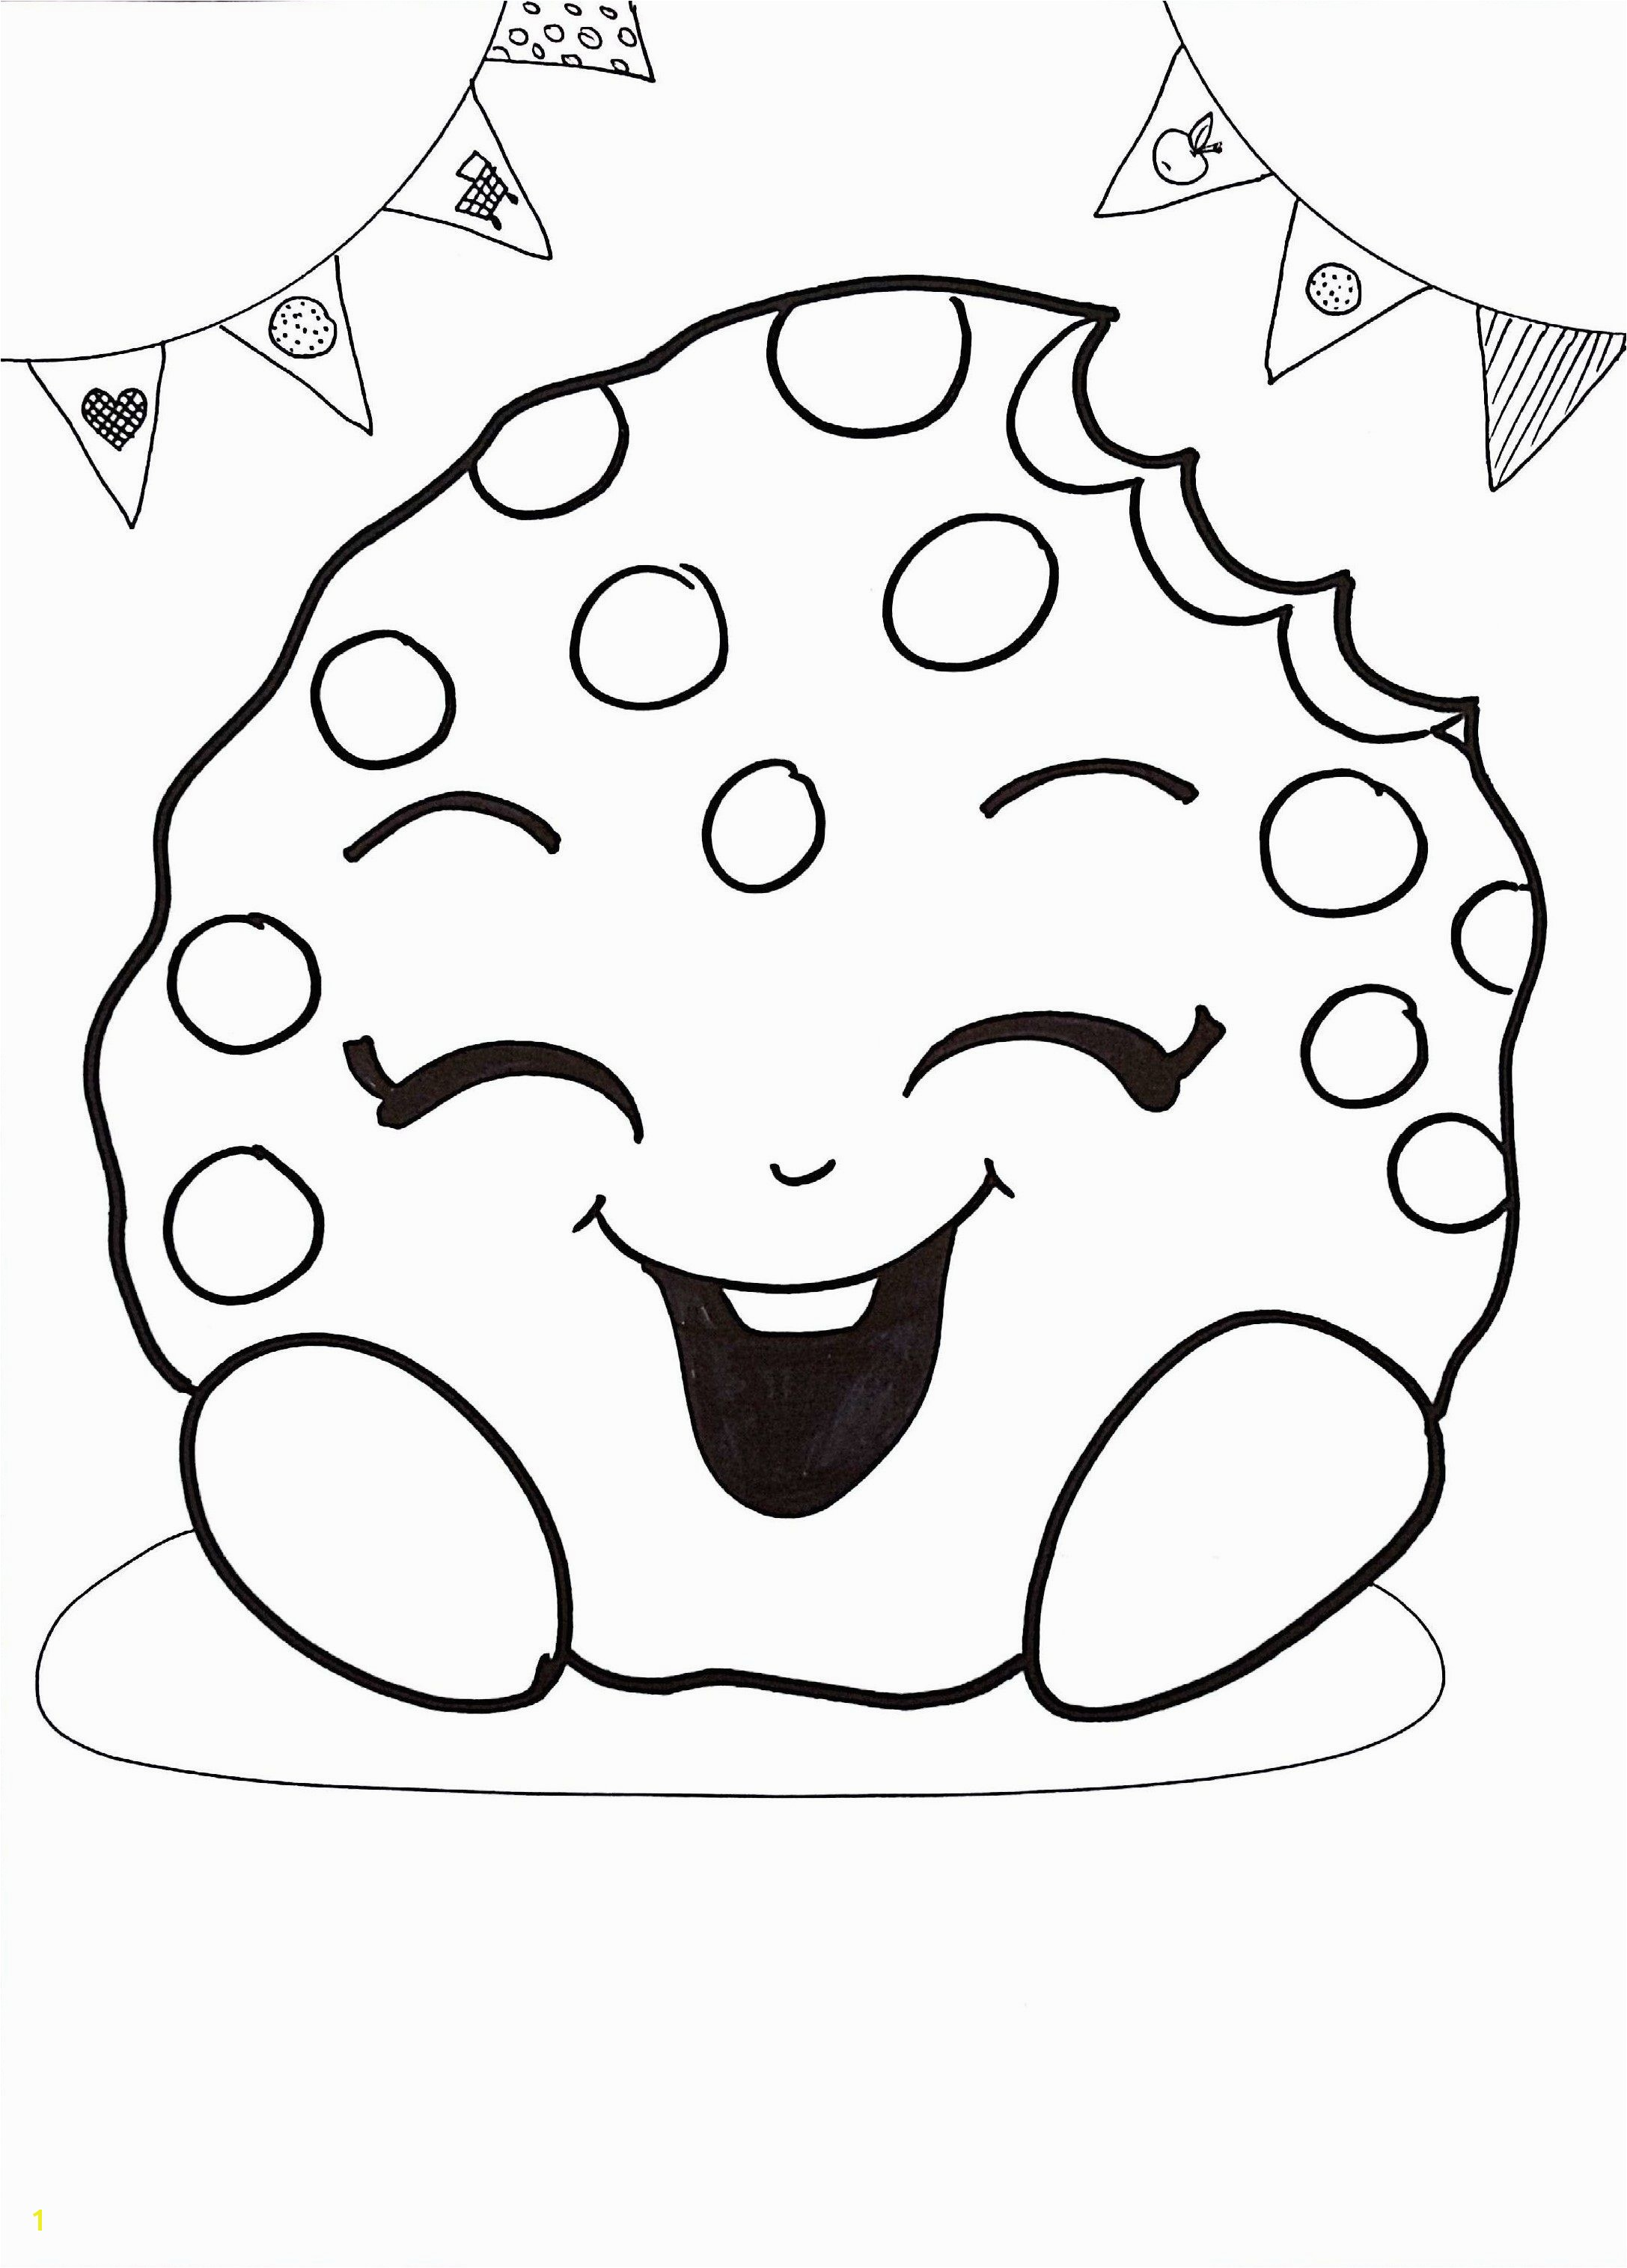 Inspirational cookie shopkins coloring pages 10